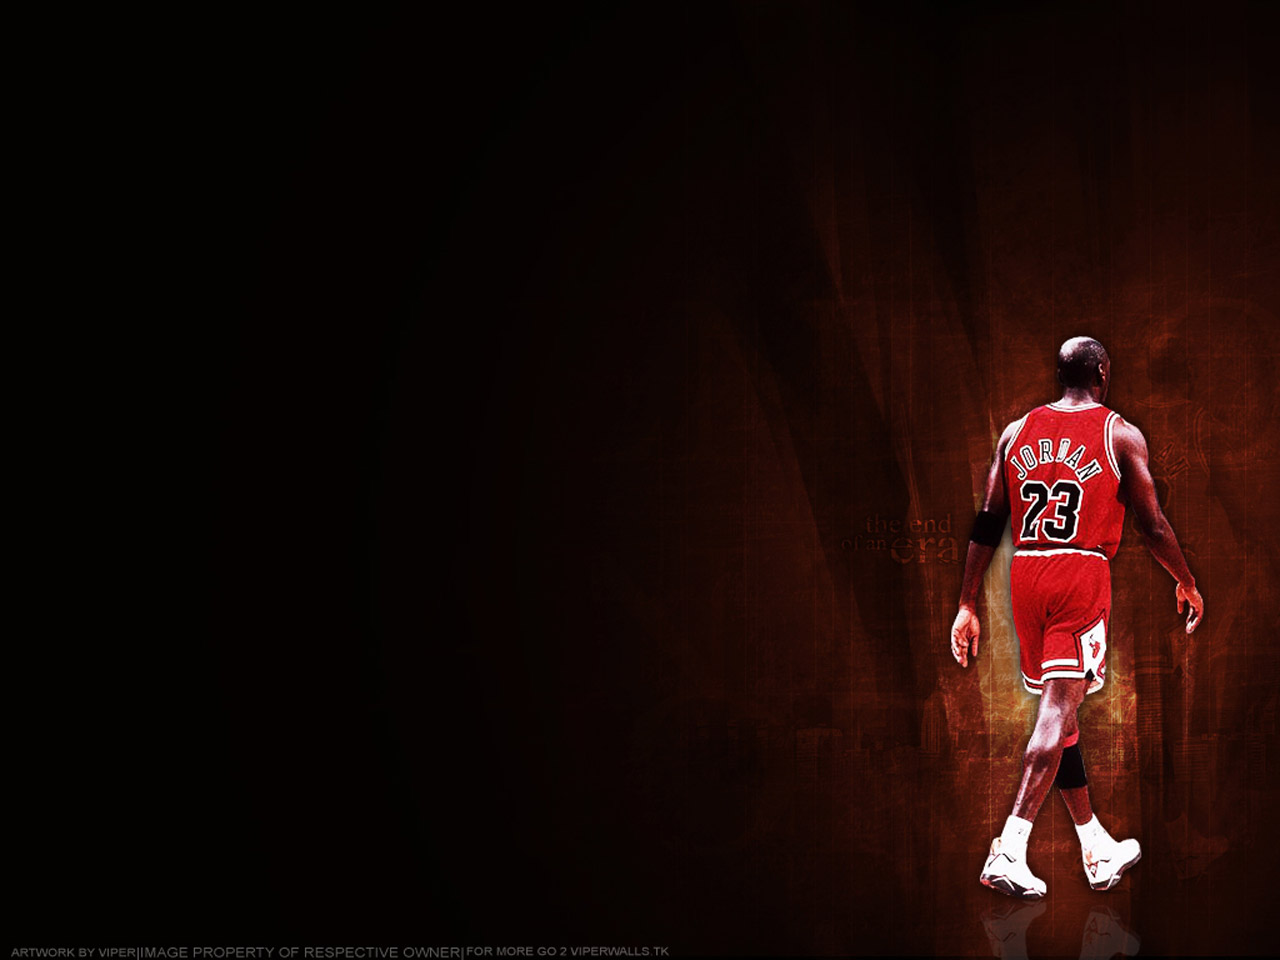 michael jordan is not god essay Michael jordan: 'because limits, like fears are often just an illusion',  not just for  the game of basketball, but in terms of what he represented  jerry looked at  me and he said 'yeah ok i guess that's a good answer, you can go back and play'   brian eno: 'singing: the key to a long life', npr essay - 2008.